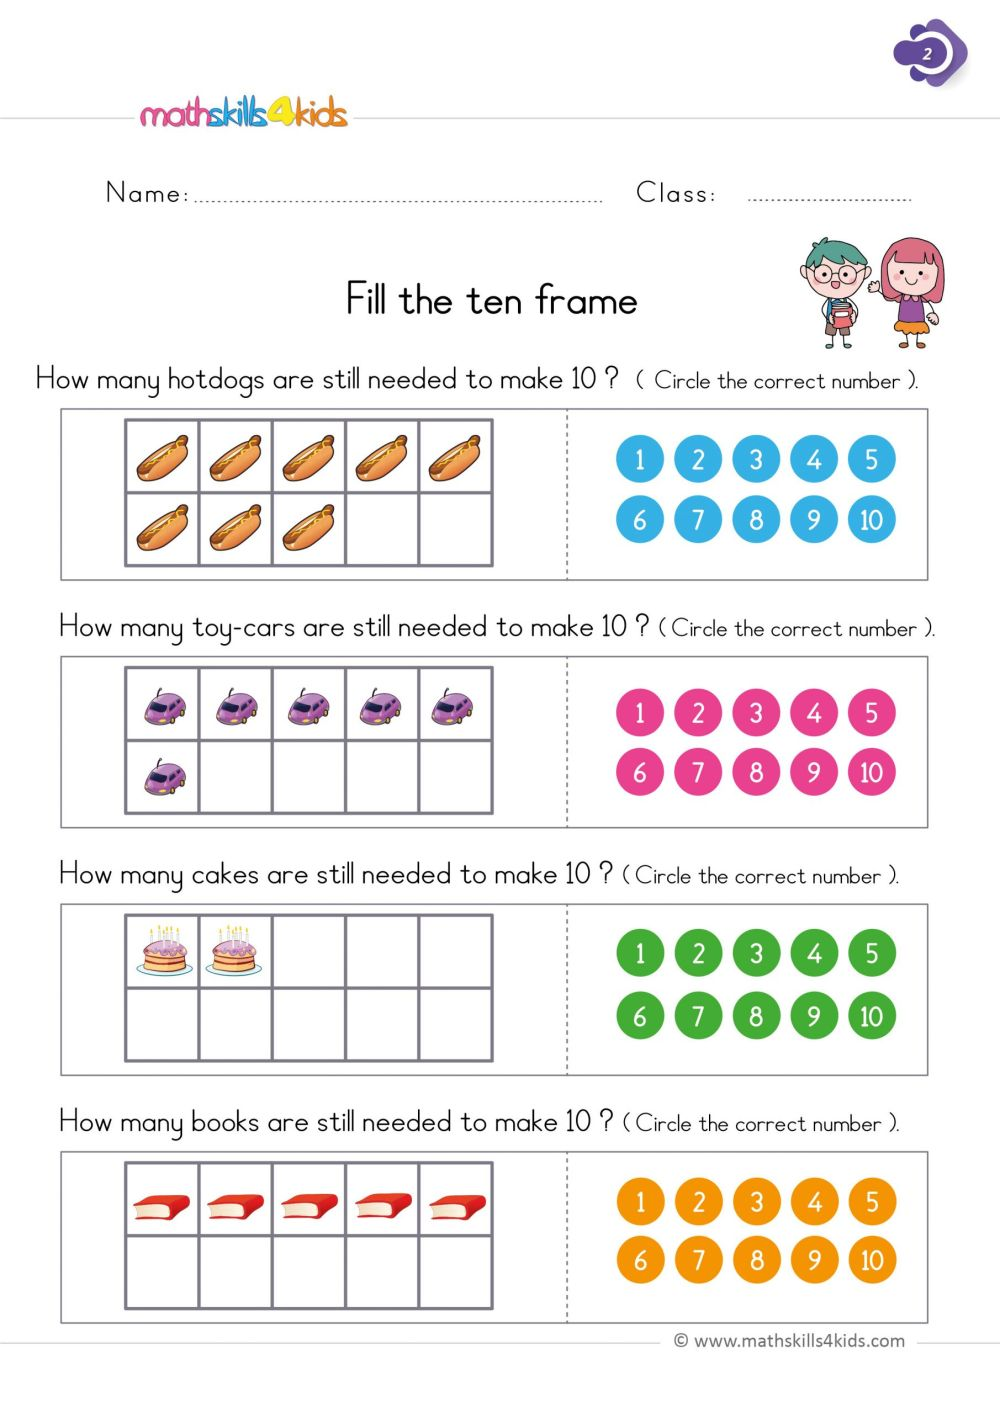 medium resolution of 4 Free Math Worksheets First Grade 1 Addition Number Bonds Sum 8 -  apocalomegaproductions.com